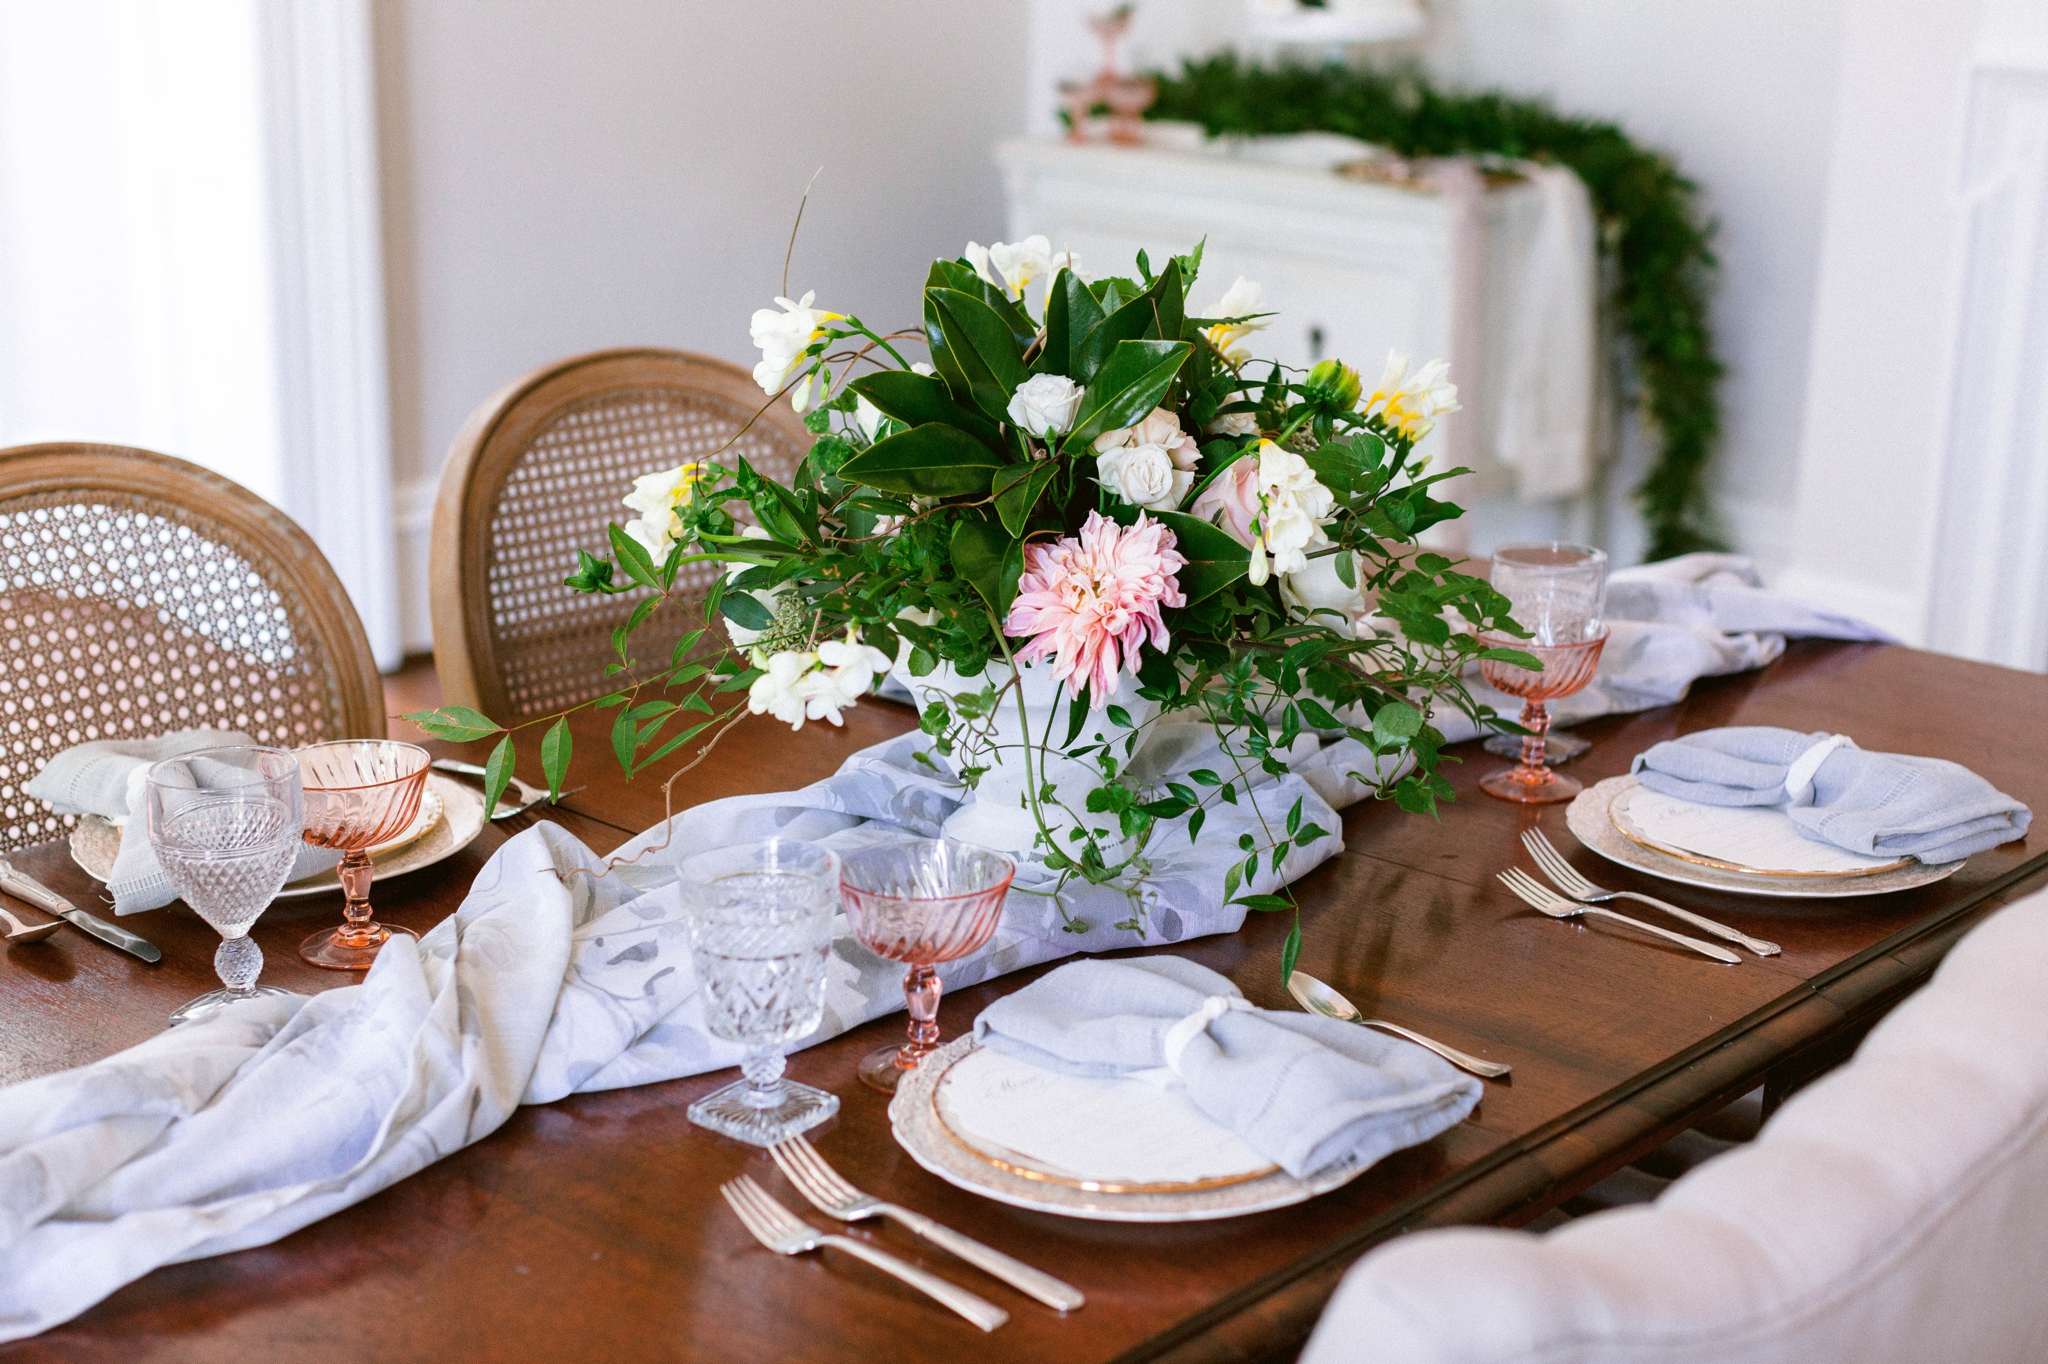 large flower centerpiece - classic and conservative luxury Wedding Table place settings - blue and pink hues with lots of greenery - reception dinner decoration inspiration - honolulu oahu hawaii wedding photographer - johanna dye photography